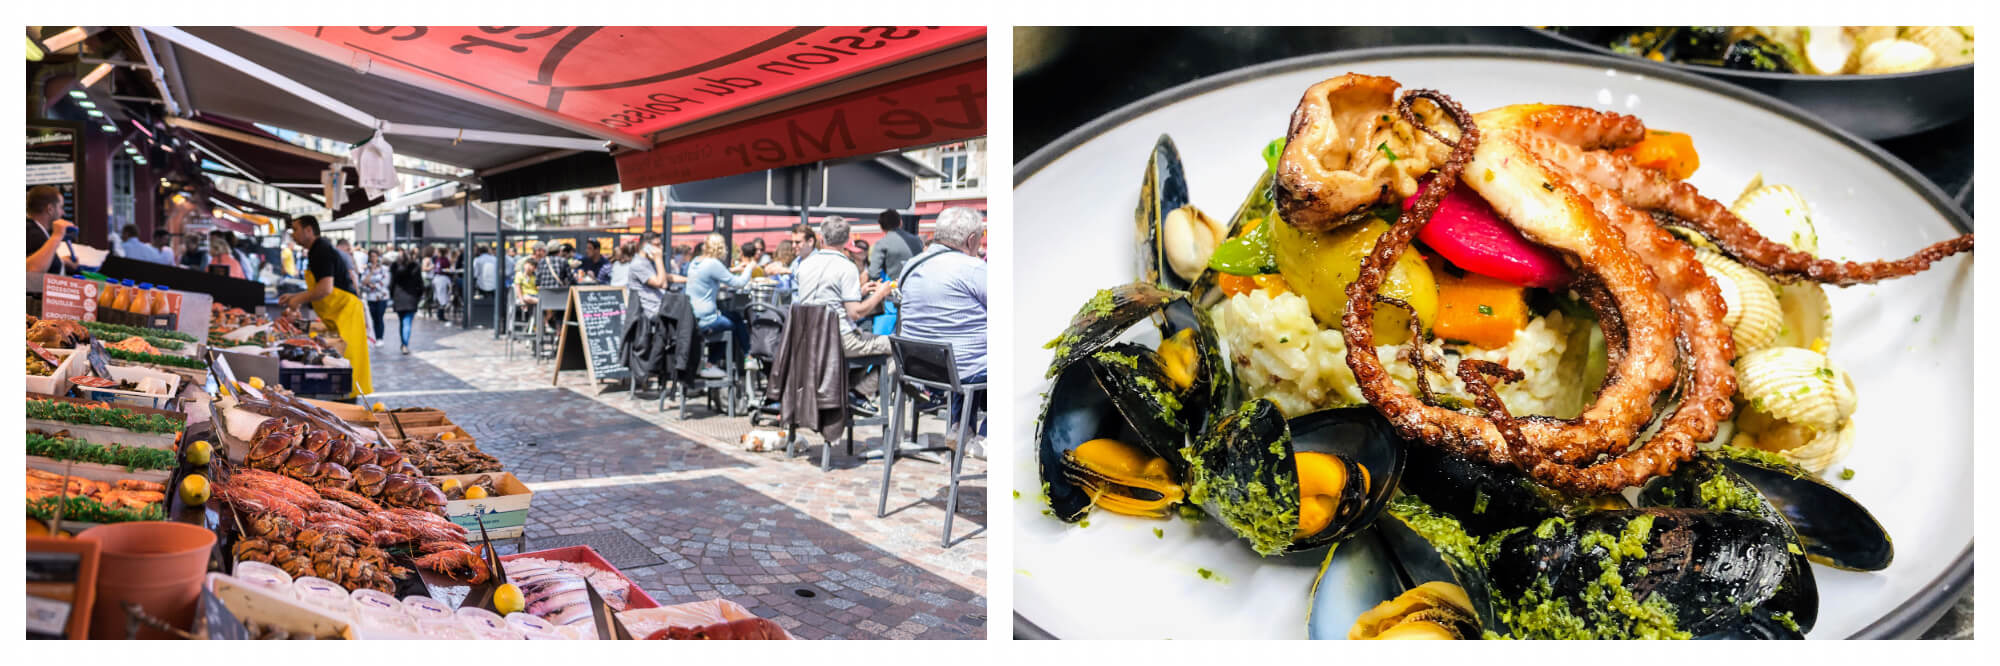 On left: the Halle aux Poissons in Trouville-sur-Mer invites visitors and locals to taste the fresh seafood caught on local beaches. On right: Fresh mussels and seared octopus are plated and ready to be served at La Table du Marché, a restaurant in Trouveille-sur-Mer that emphasizes local ingredients.